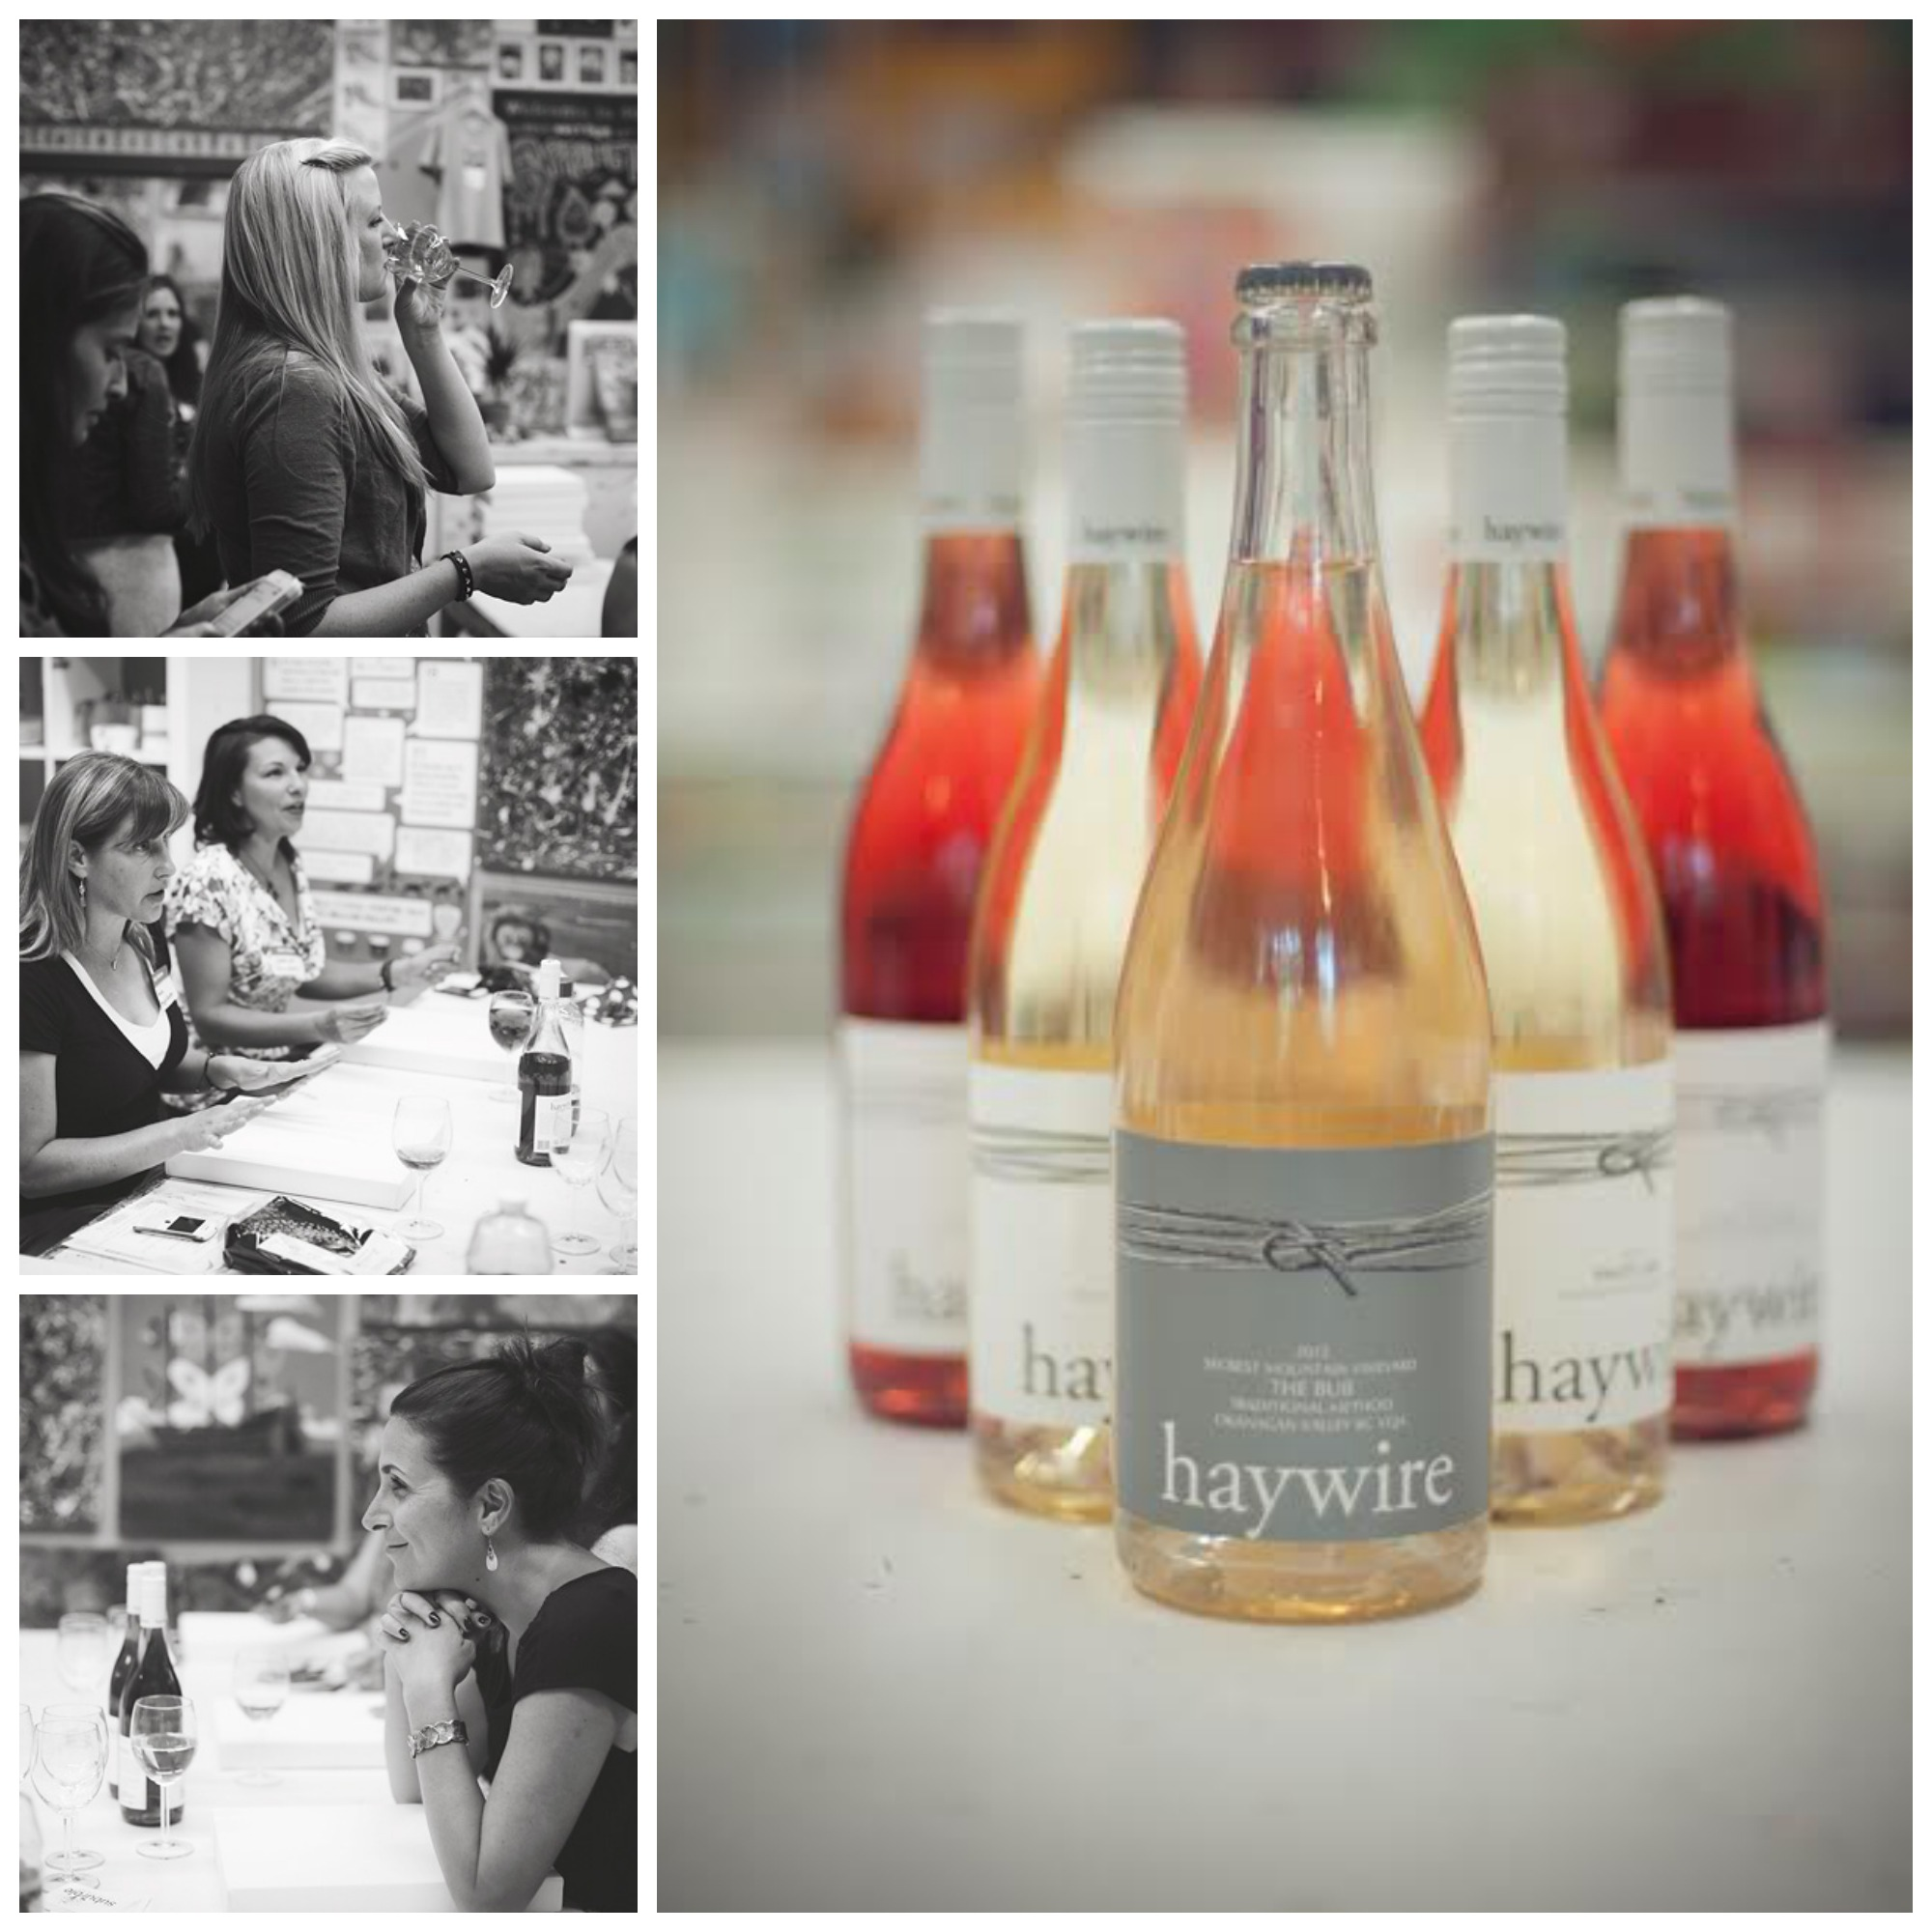 Haywire wine at West Coast Creative Company Event.jpg